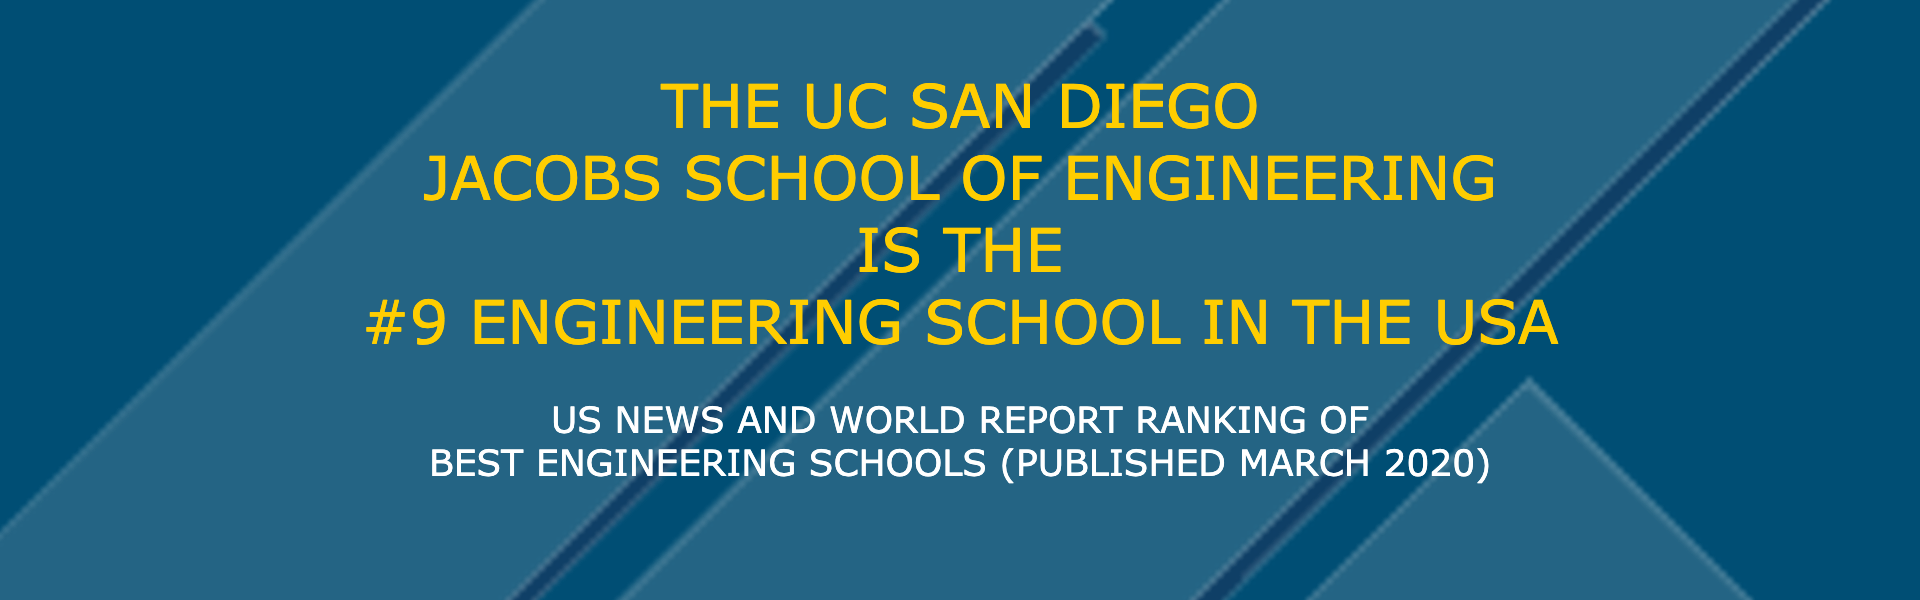 JSOE ranked #9th best Engineering School in the USA